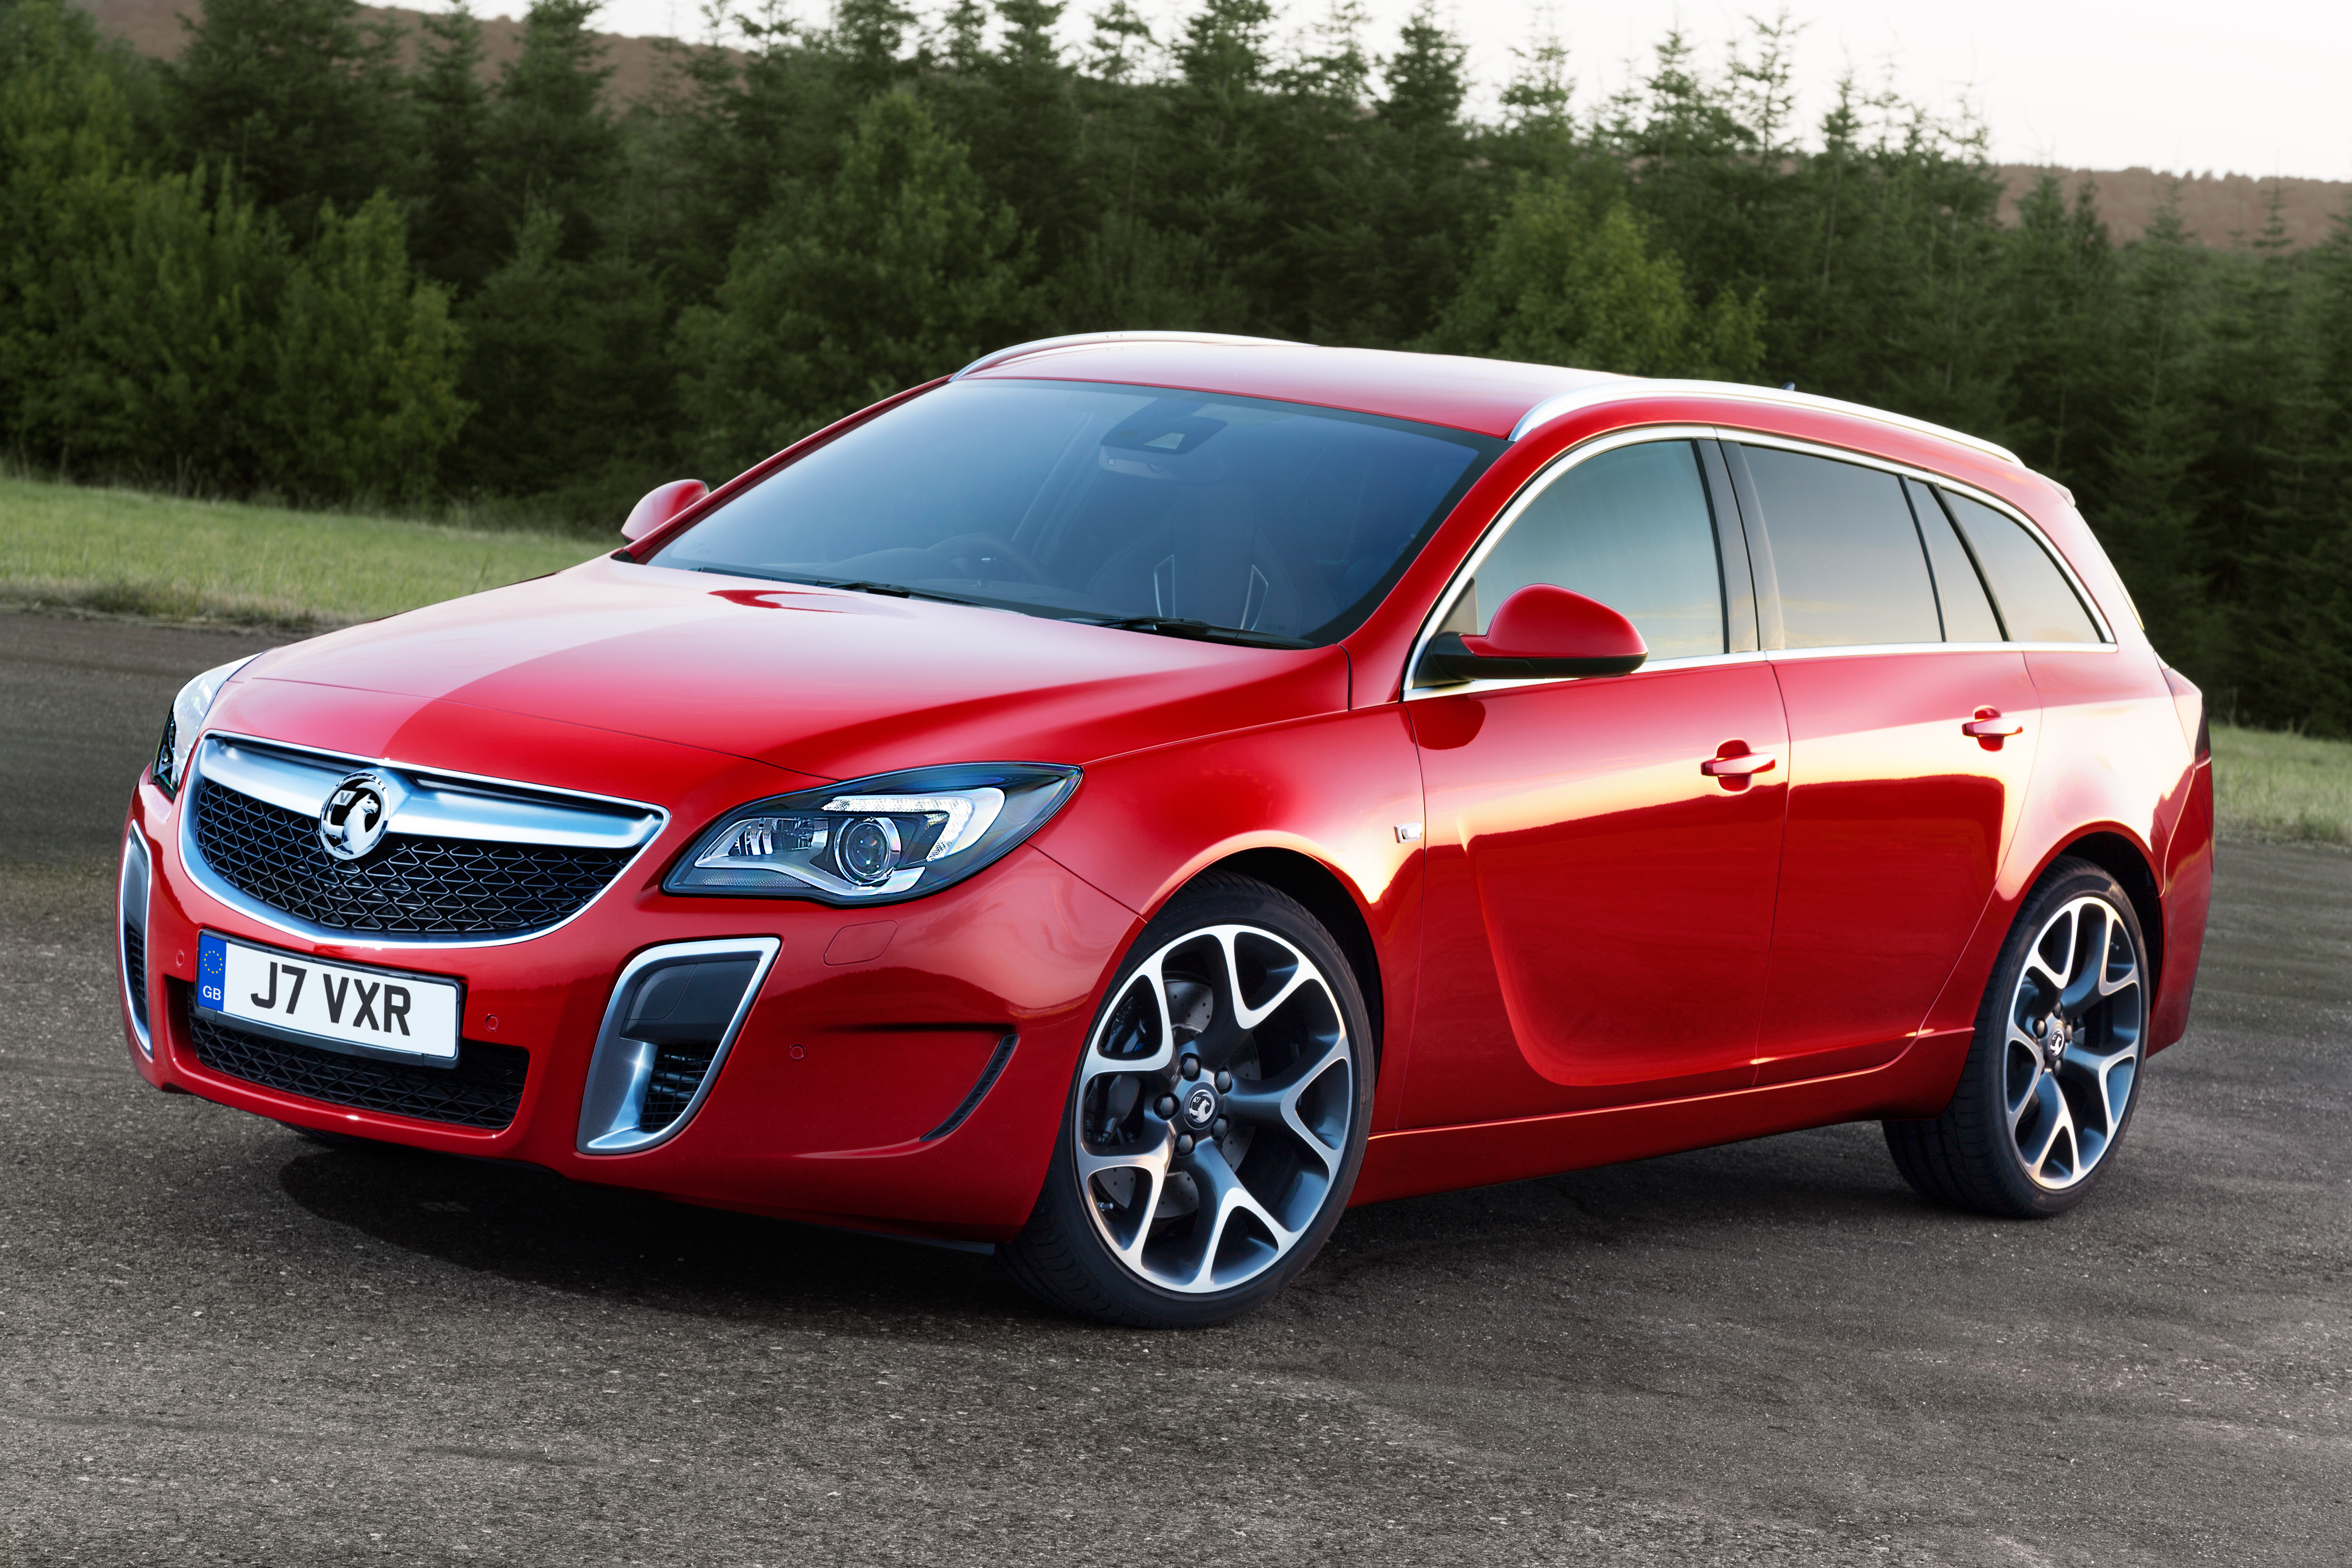 2013 Vauxhall Insignia VXR SuperSport | Top Speed